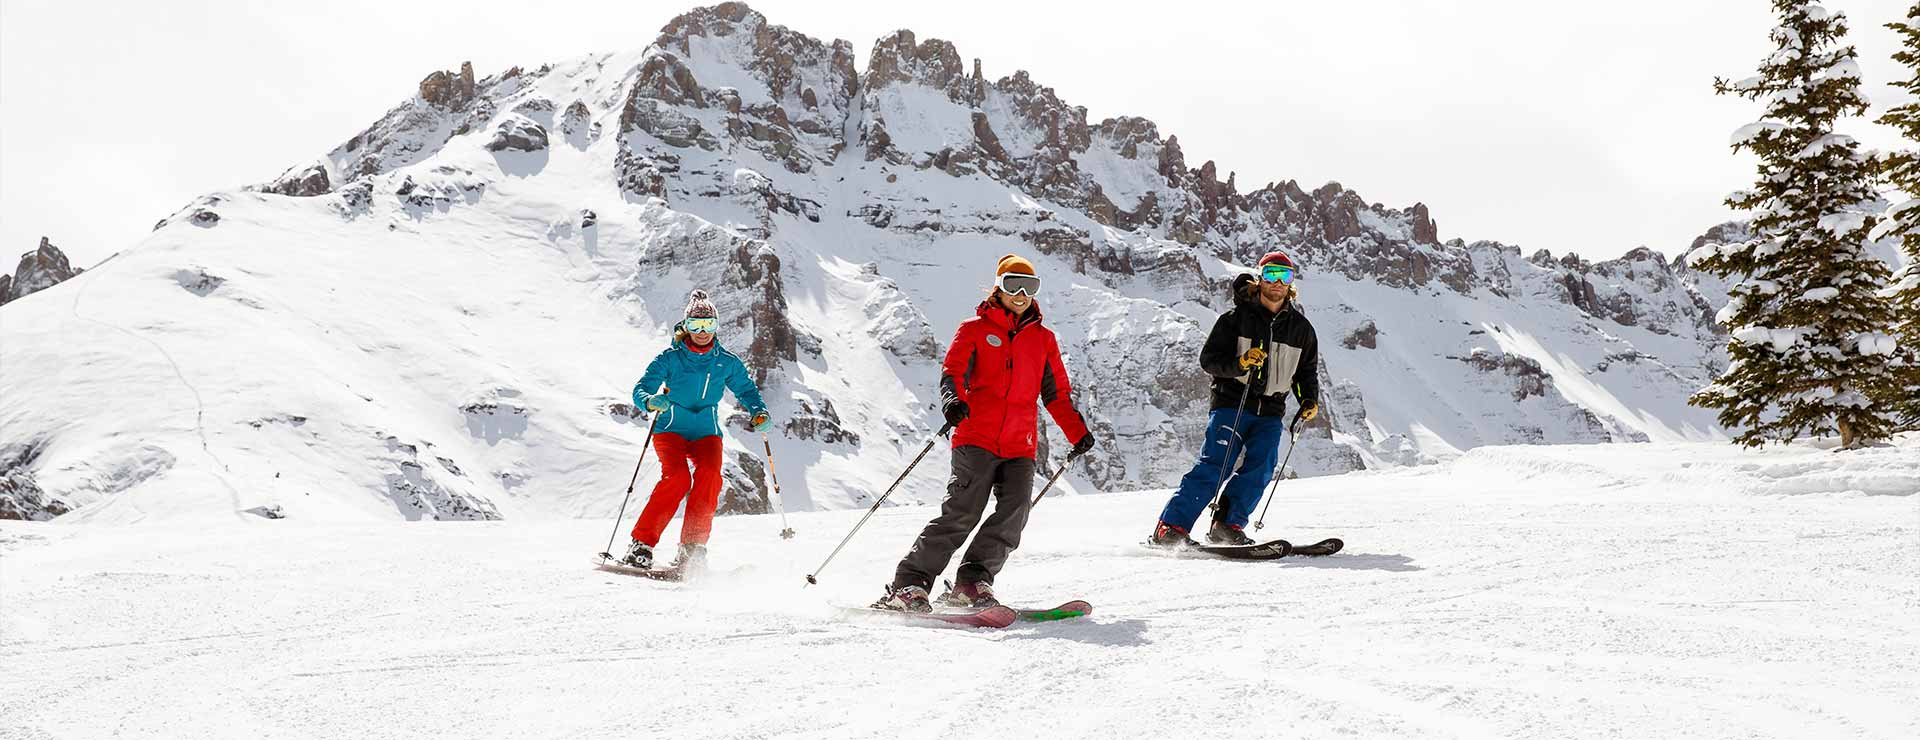 Ski Trip Advisors is a FREE Service!